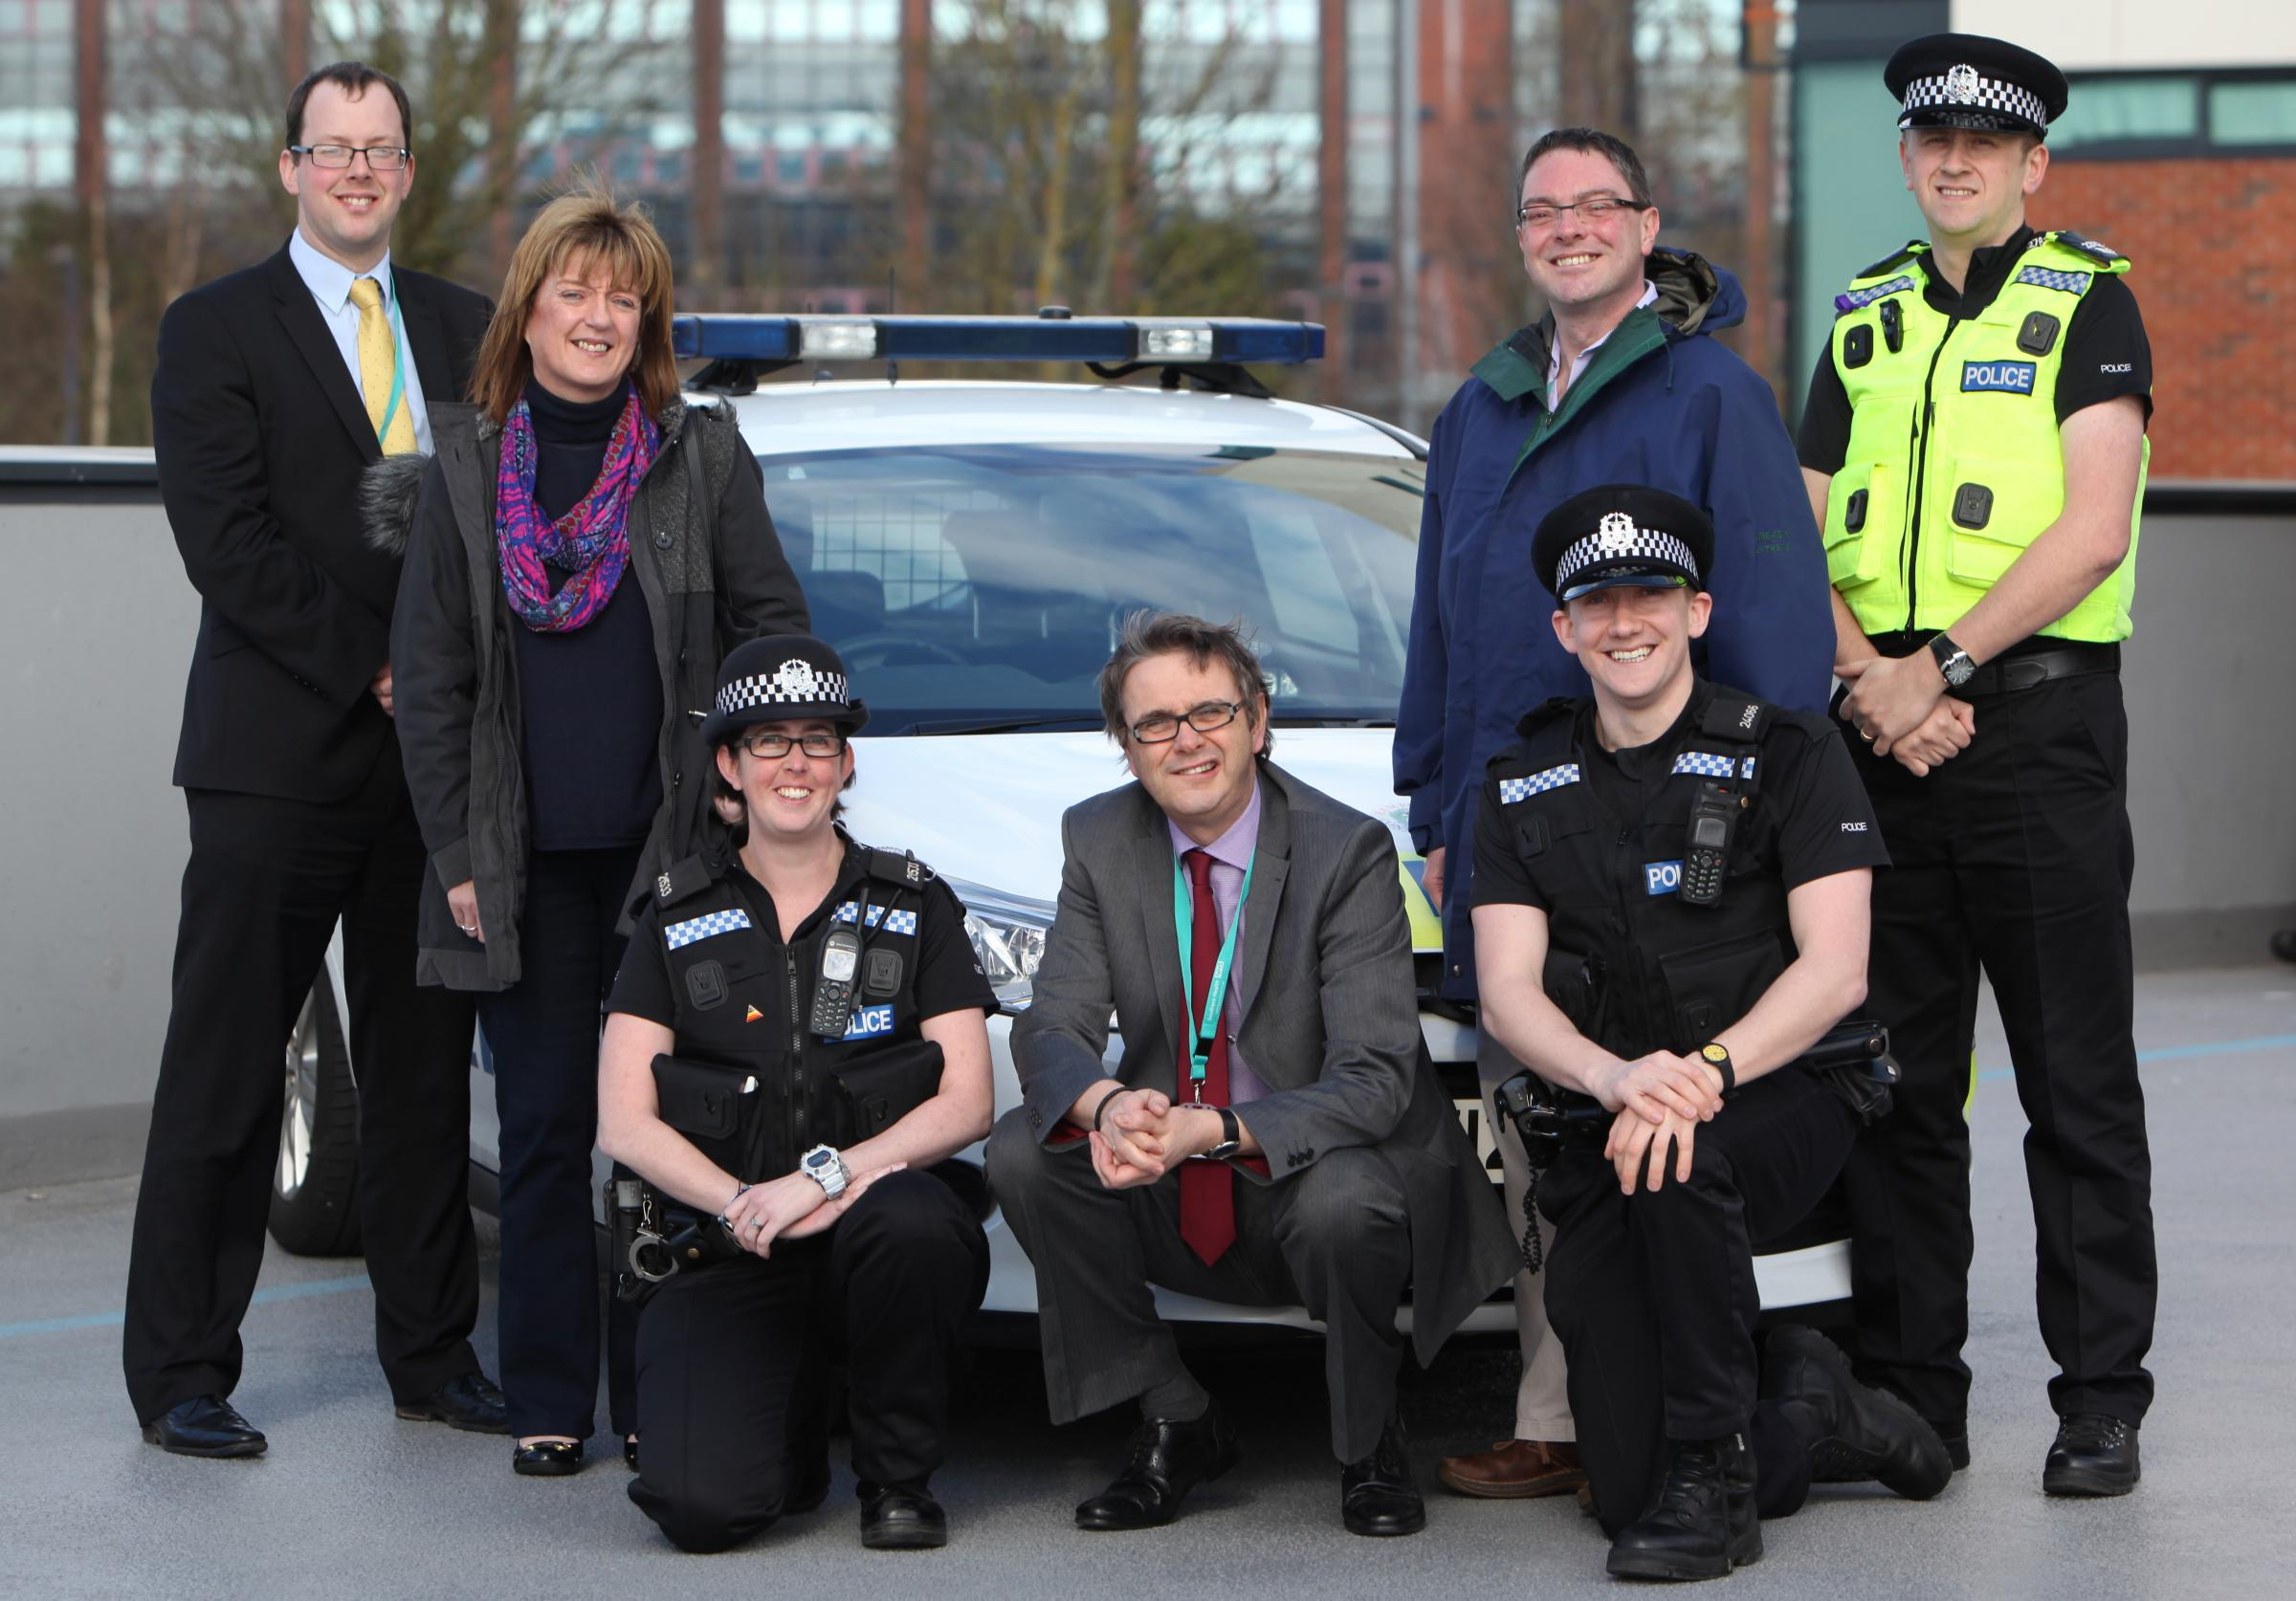 James Barton, Valerie Walsh, PC Sarah Humphries,  access and assessment manager Colin Edwards, PC Tom Cottrell, senior nurse practitioner Jon Lomax and Sgt Paul Southam at the launch of Operation Serenity.